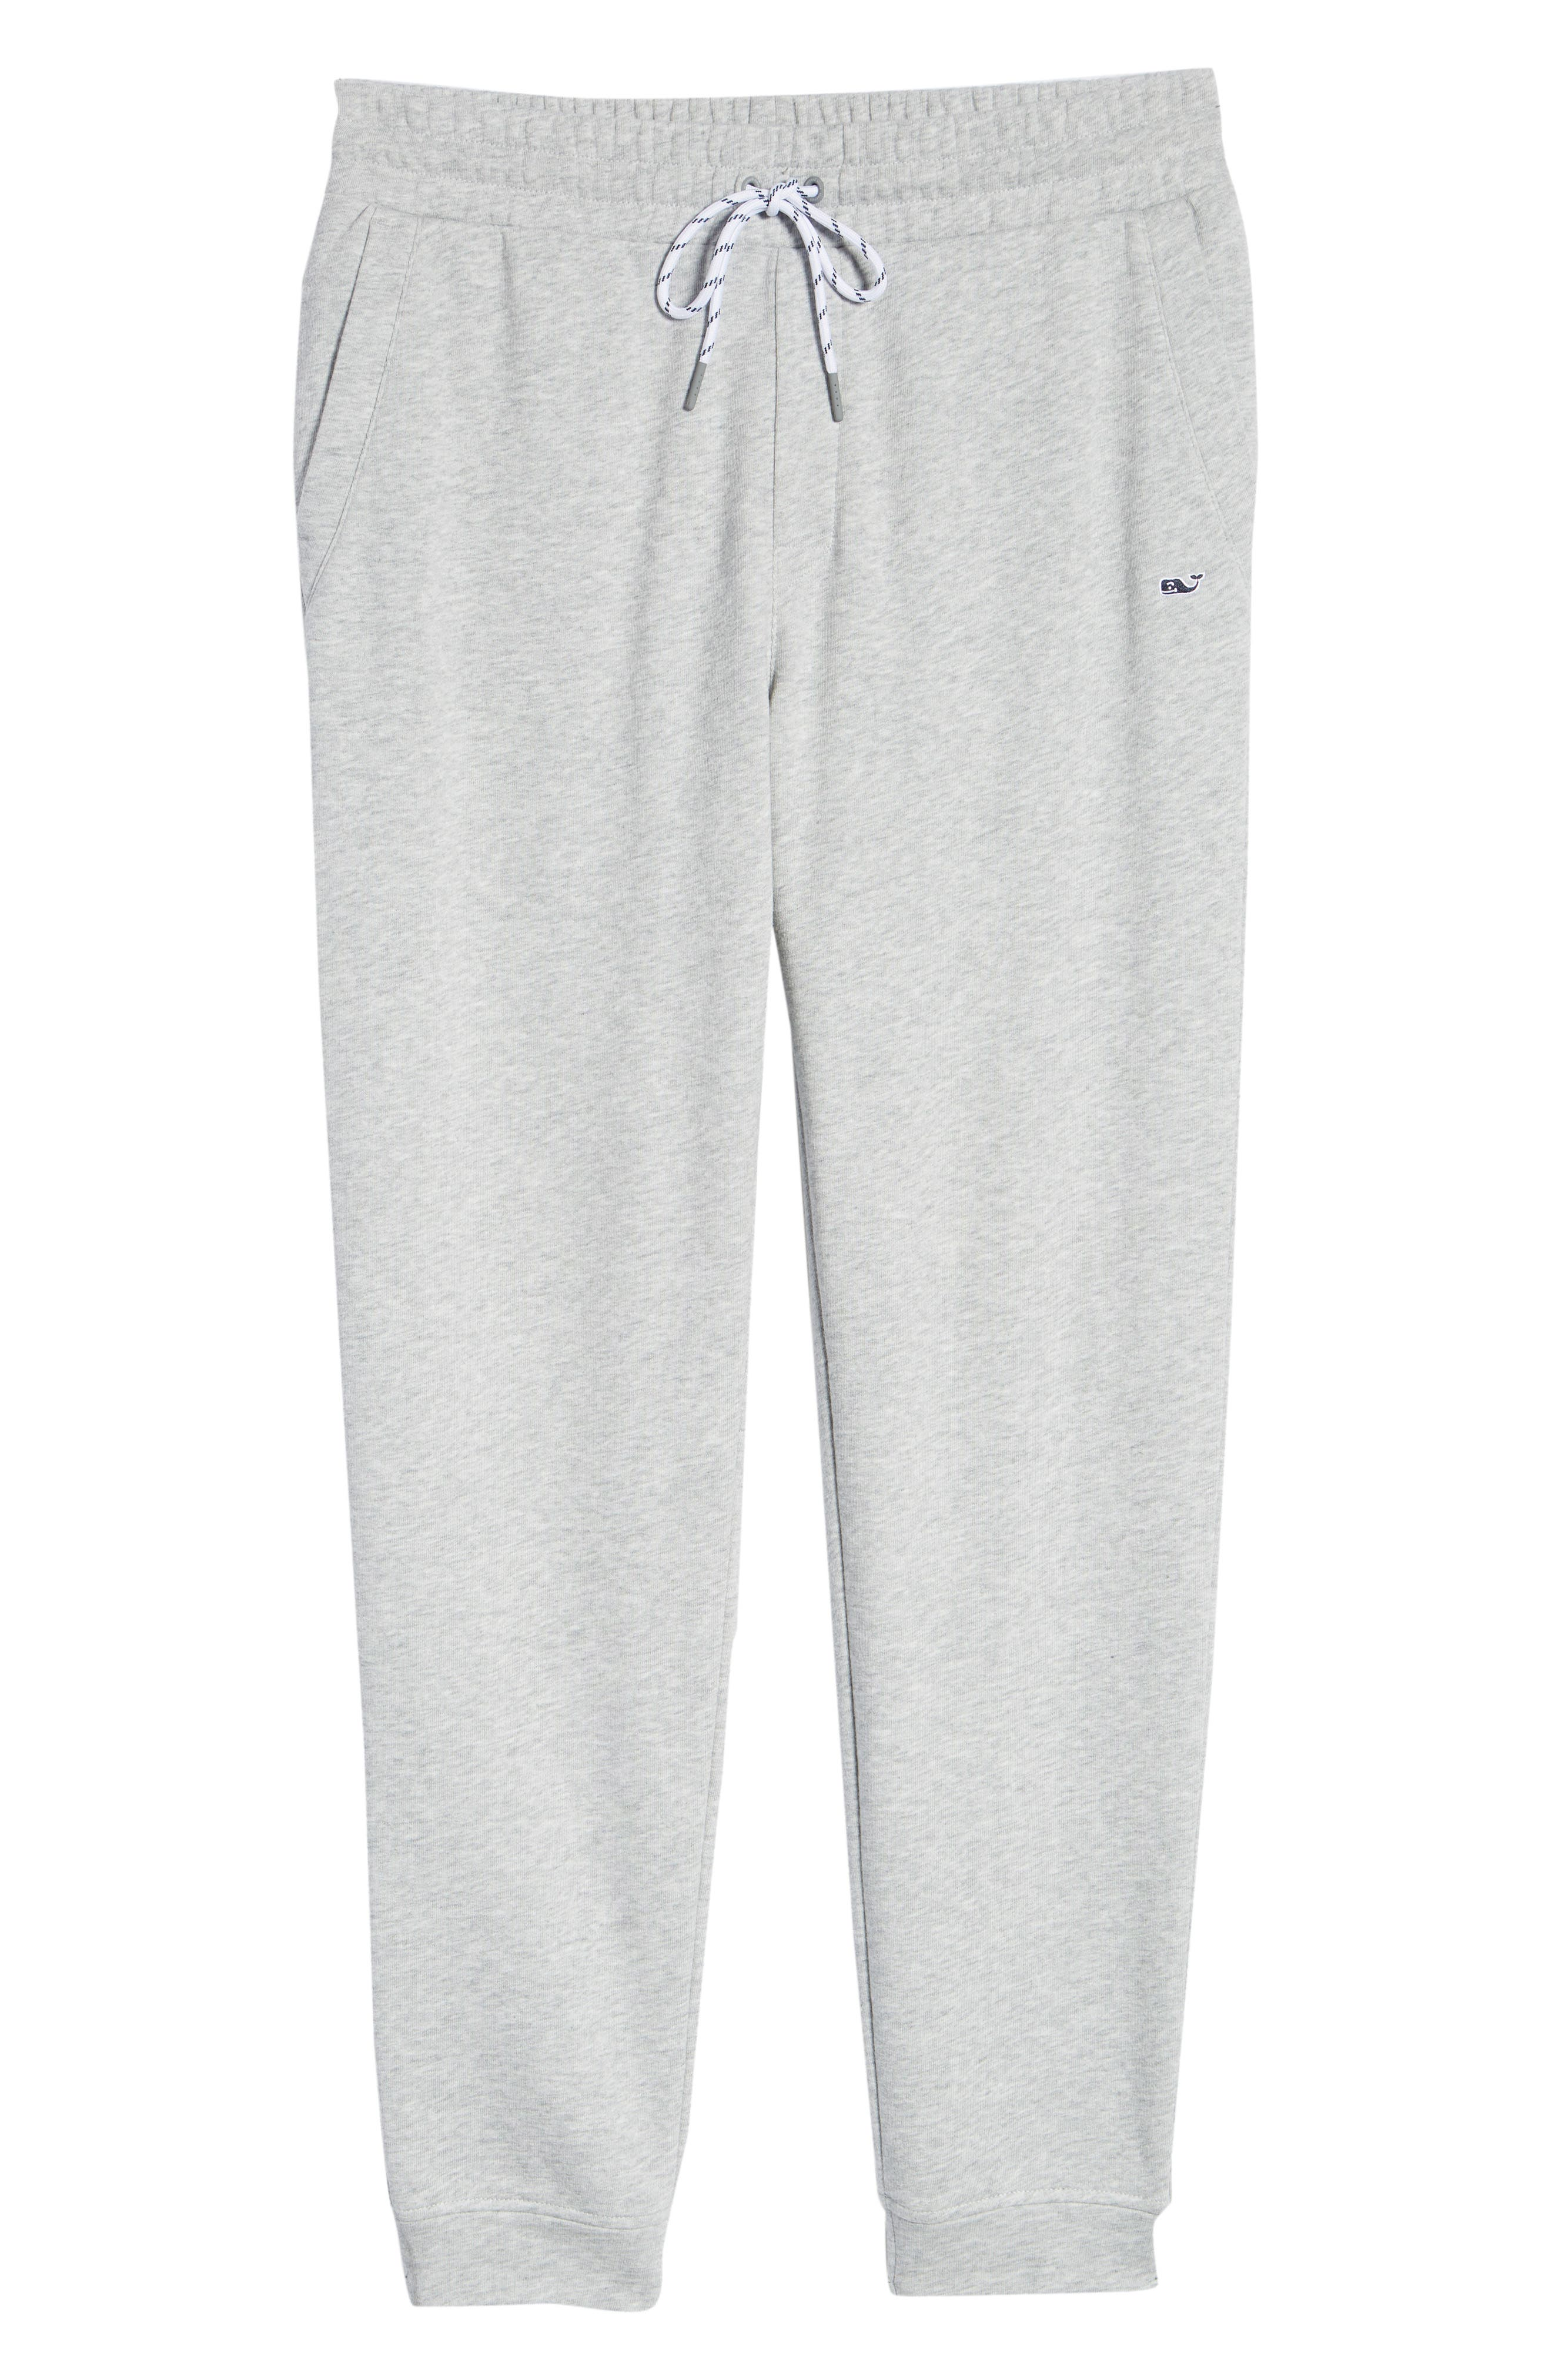 Heritage French Terry Knit Jogger Pants,                             Alternate thumbnail 6, color,                             GRAY HEATHER